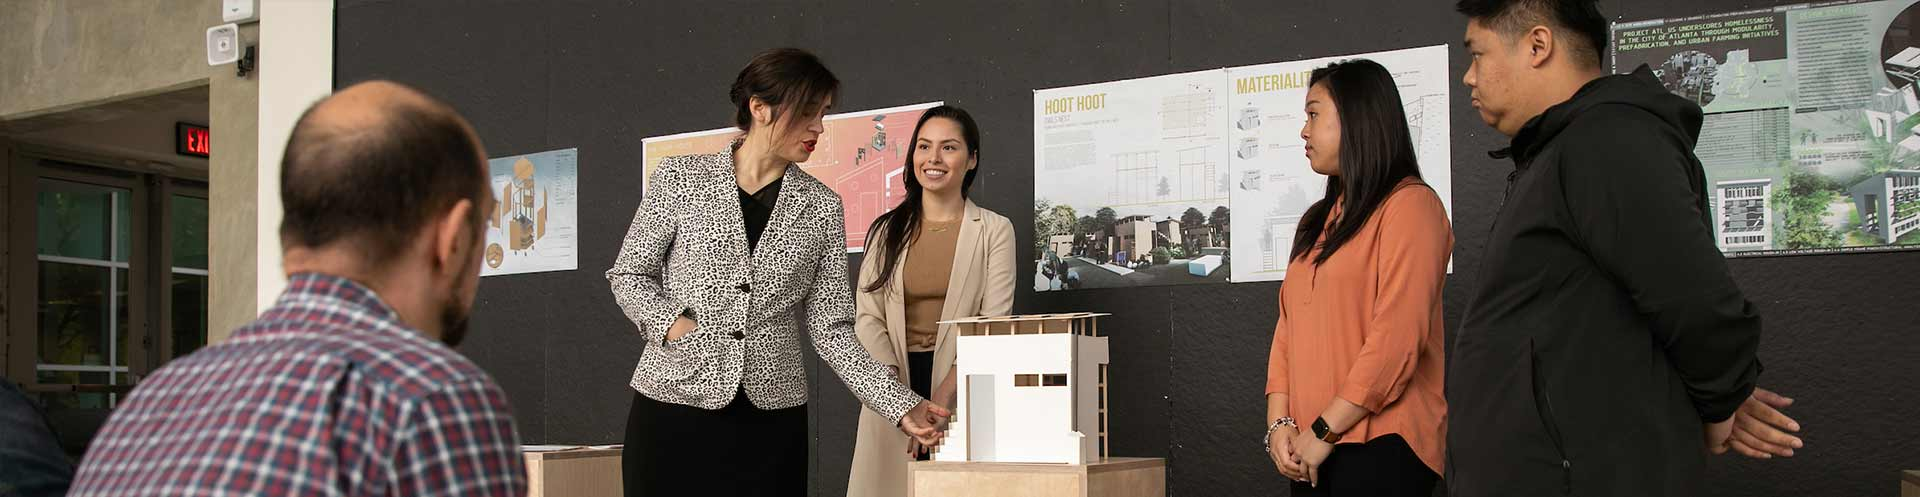 Kennesaw State alumni, faculty highlight benefits of architecture research